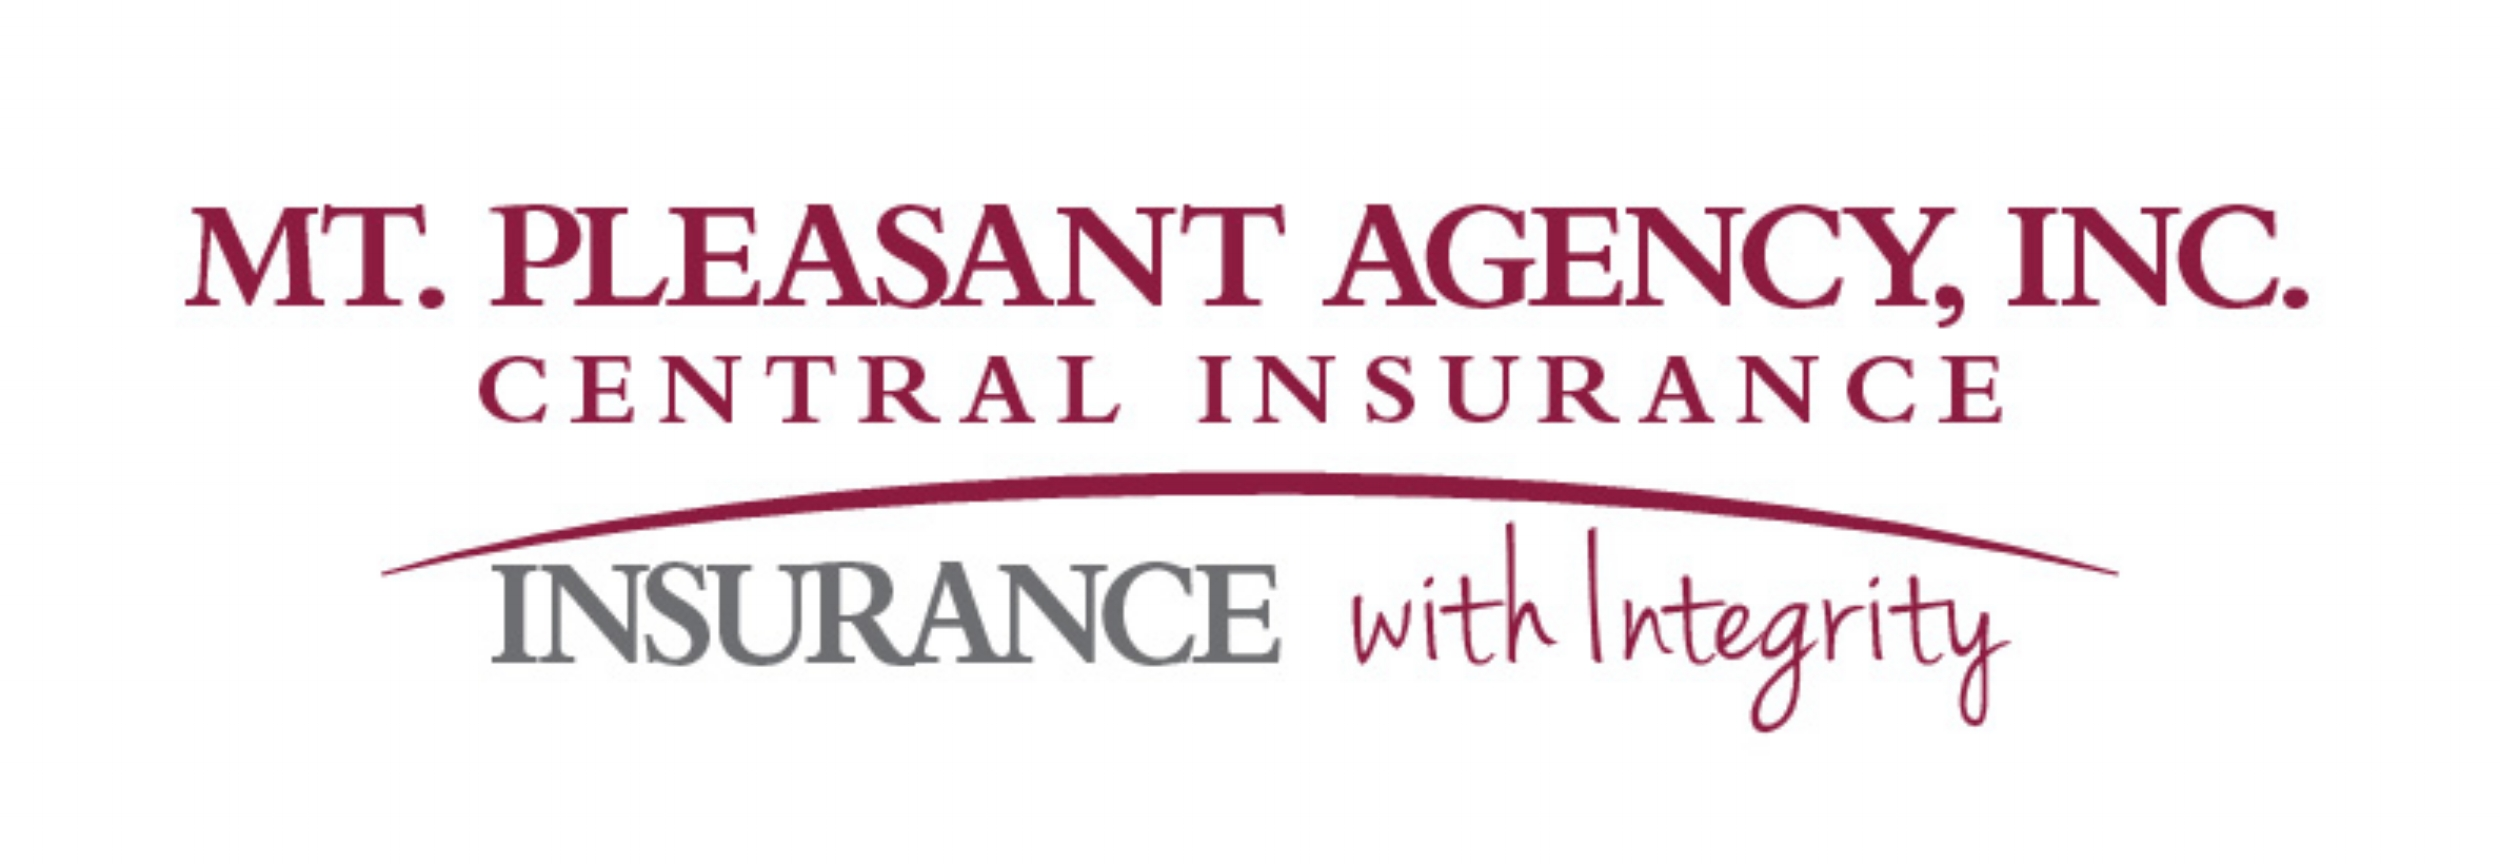 Mt. Pleasant Agency - Central Insurance